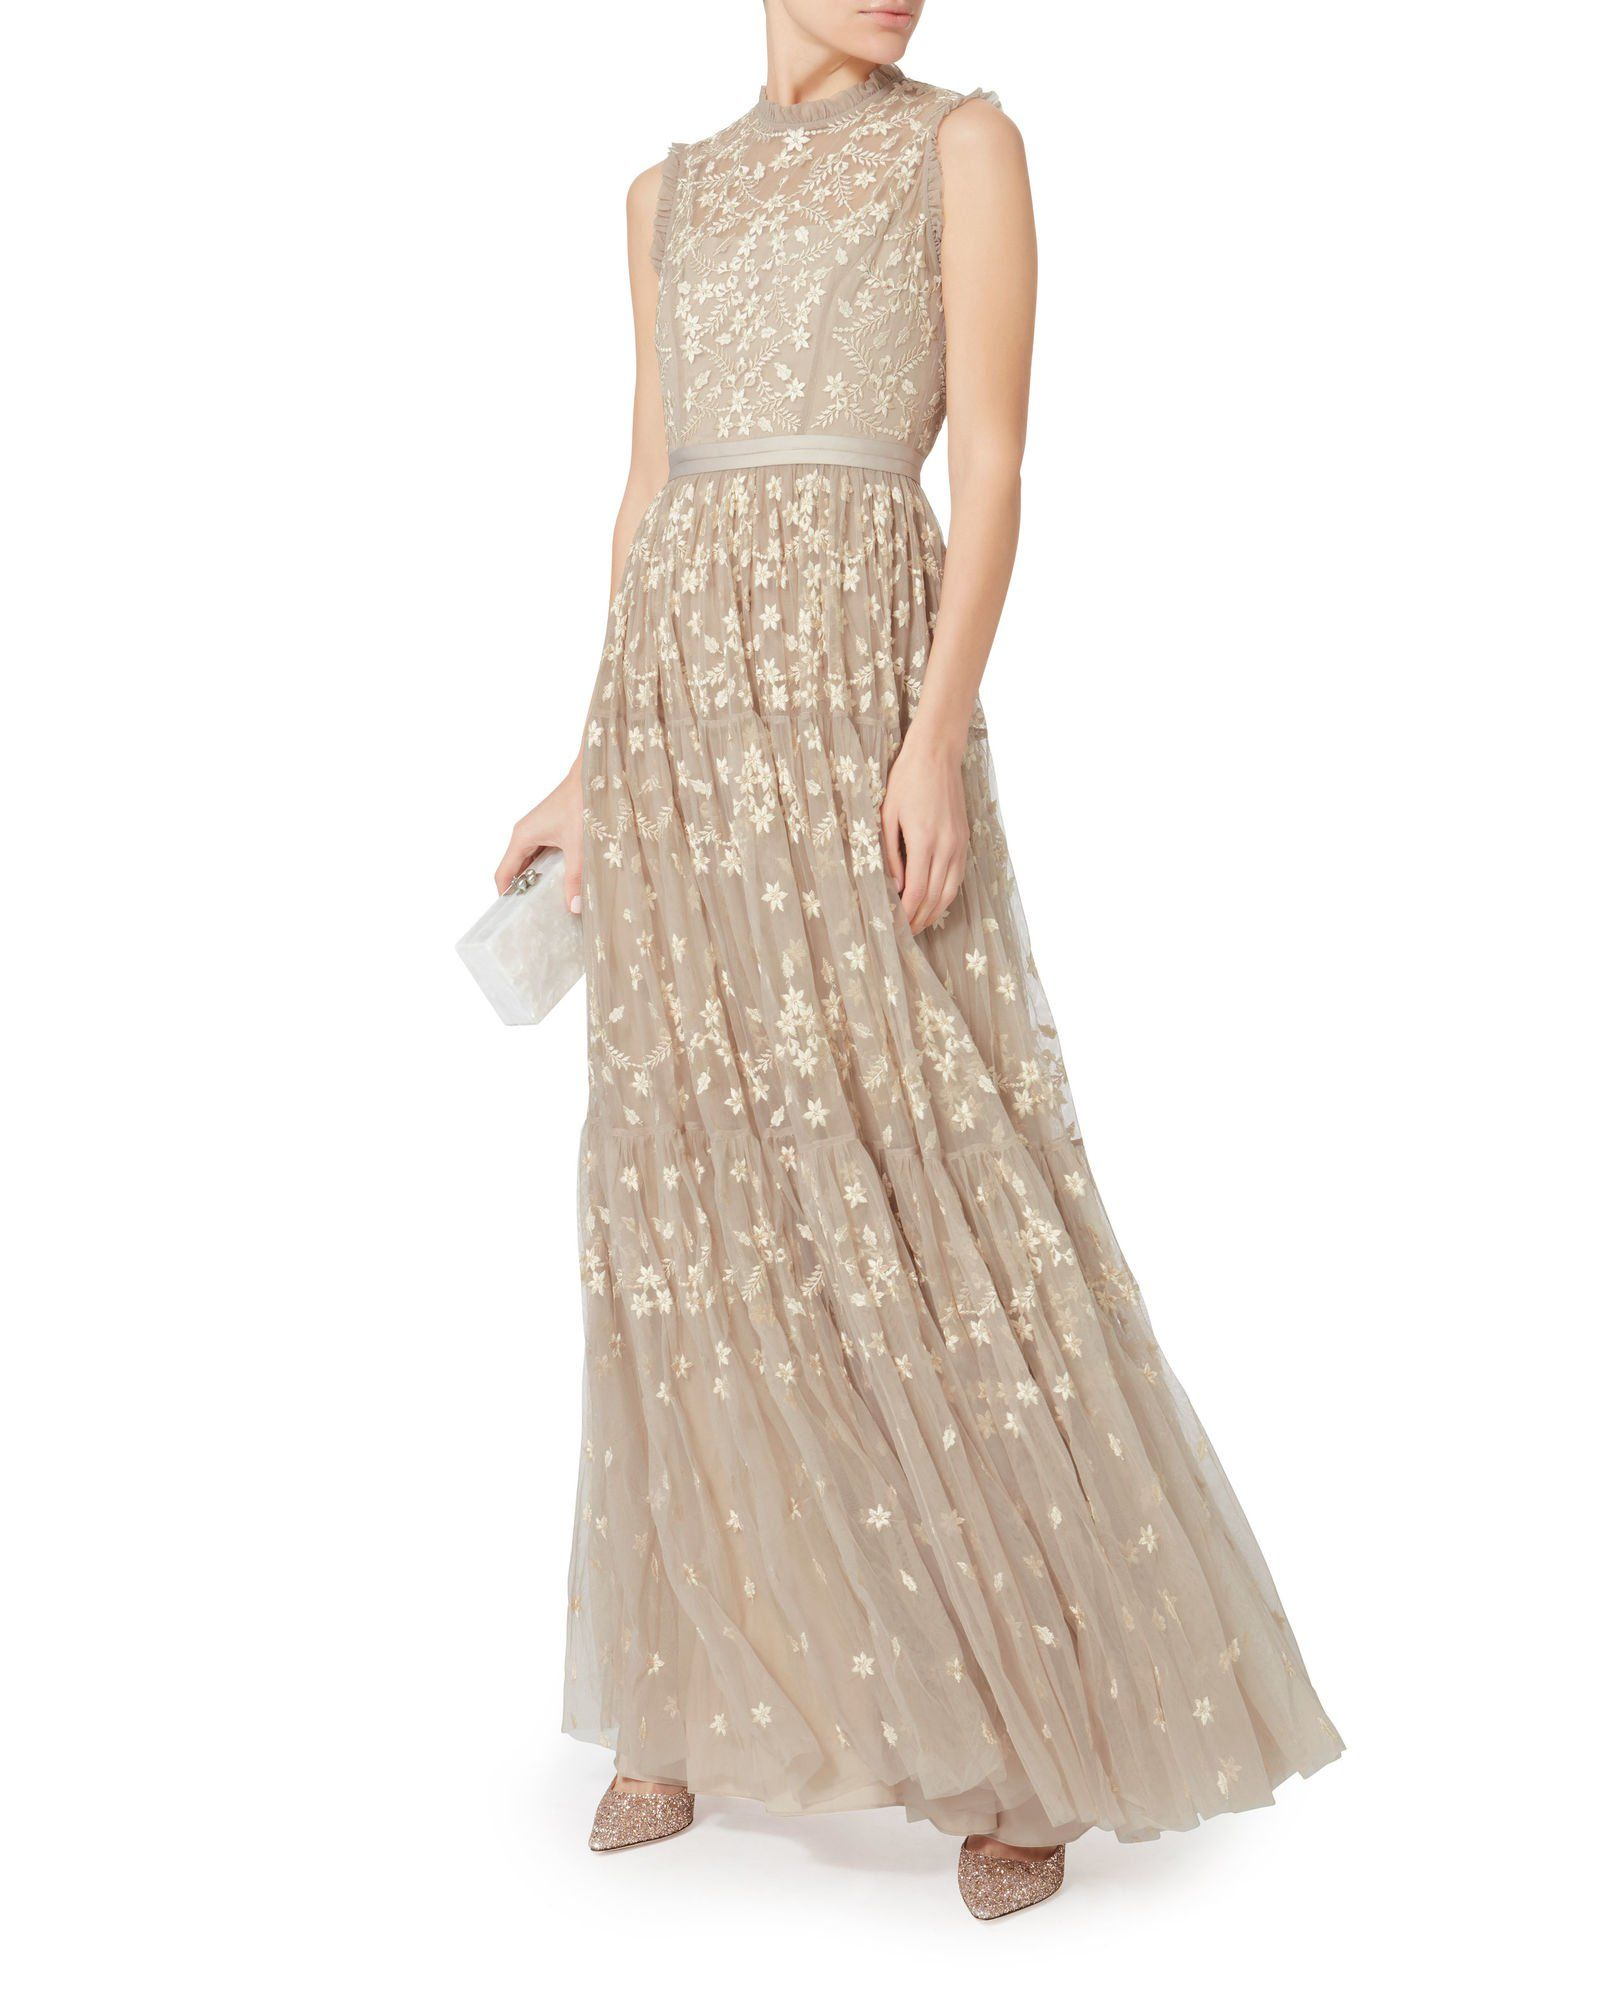 Clover-Embellished Gown, BEIGE, hi-res | Wedding Junk | Pinterest ...